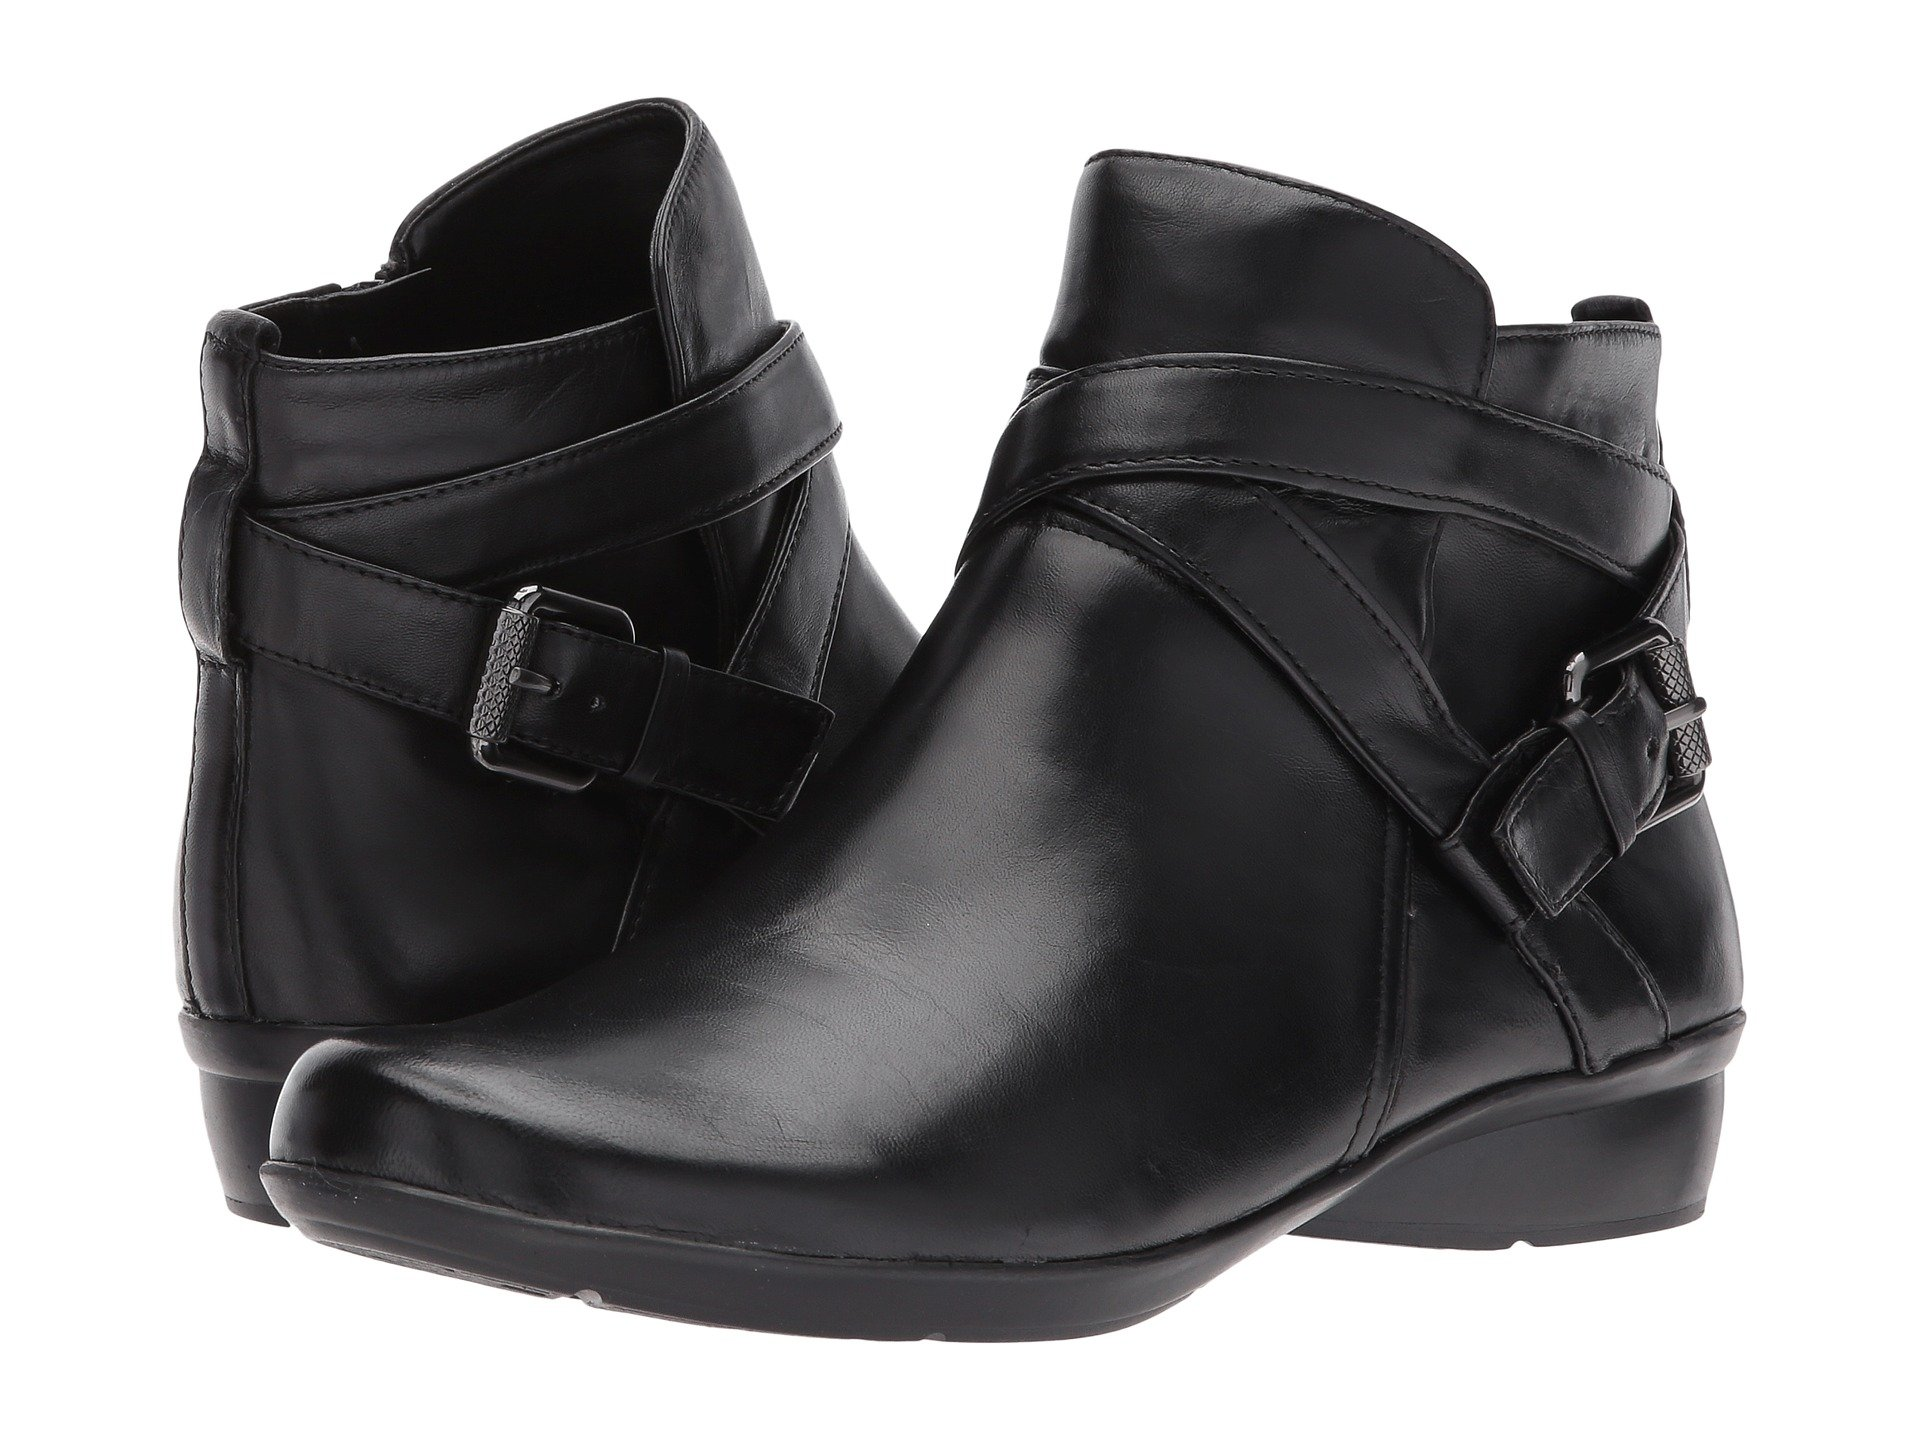 994ba3b4d943 Women s Ankle Boots and Booties + FREE SHIPPING